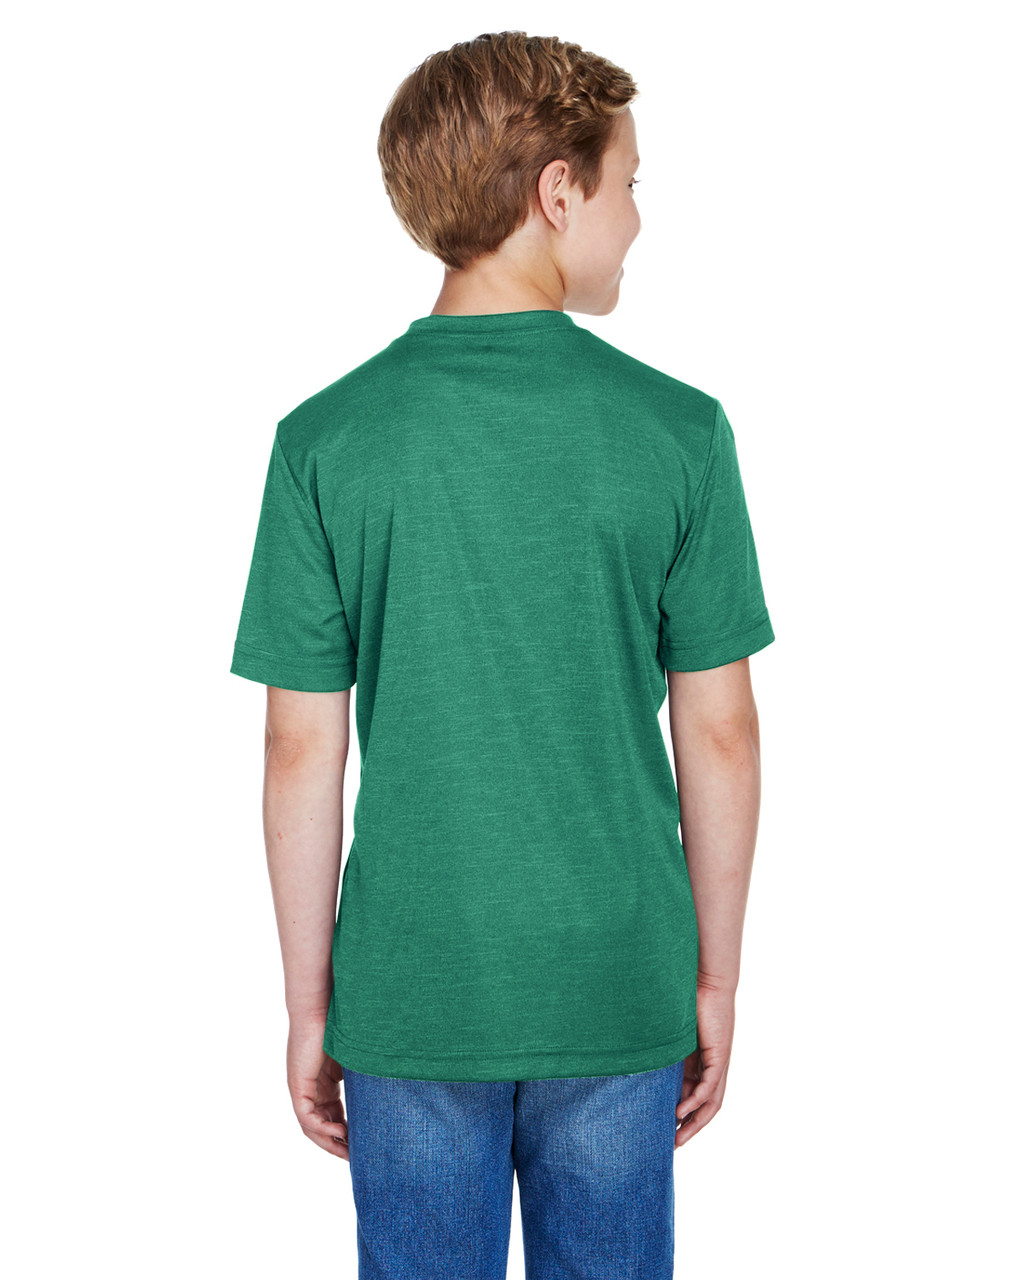 Sport Forest Heather - Back, TT11HY Team 365 Youth Sonic Heather Performance T-Shirt | BlankClothing.ca